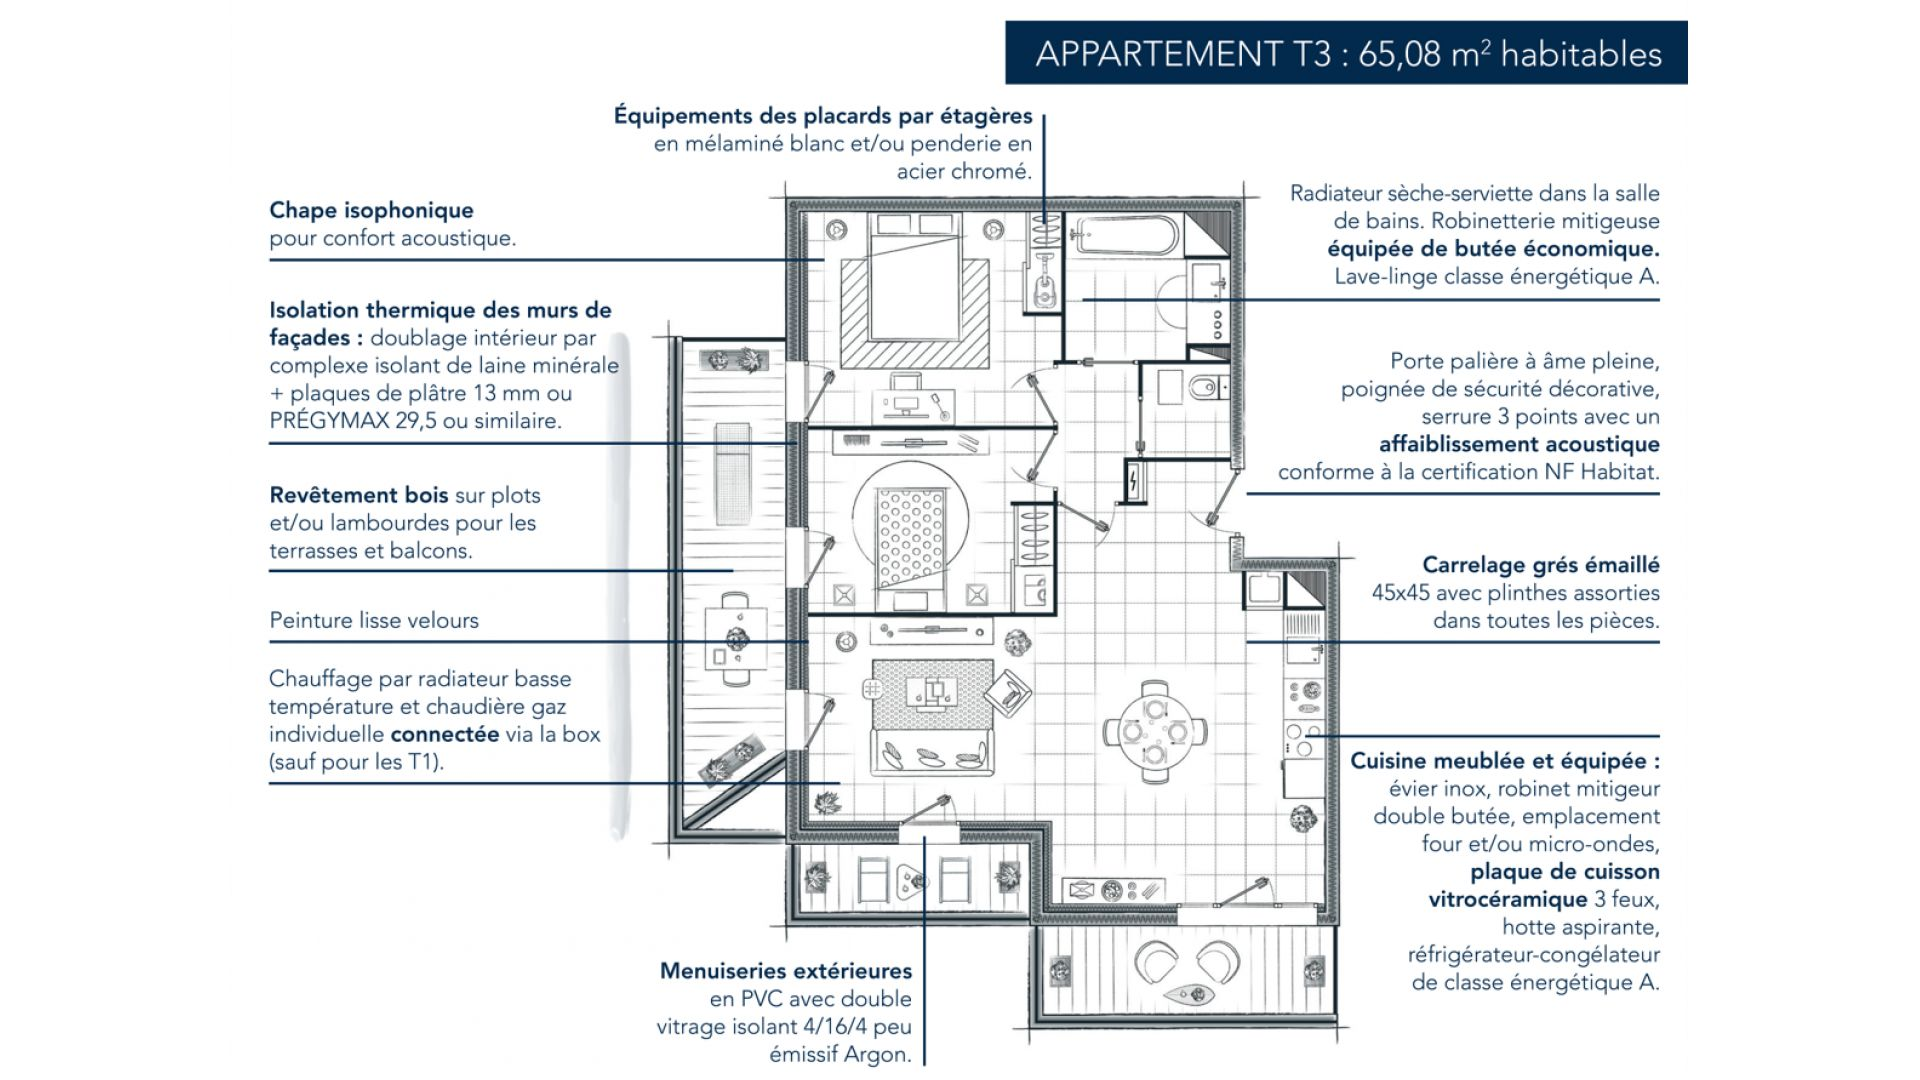 Greencity Immobilier - Le Stendhal - Cesson 77240 - achat appartements du T1 au T4 - Villa T4 et T5 - Plan appartement